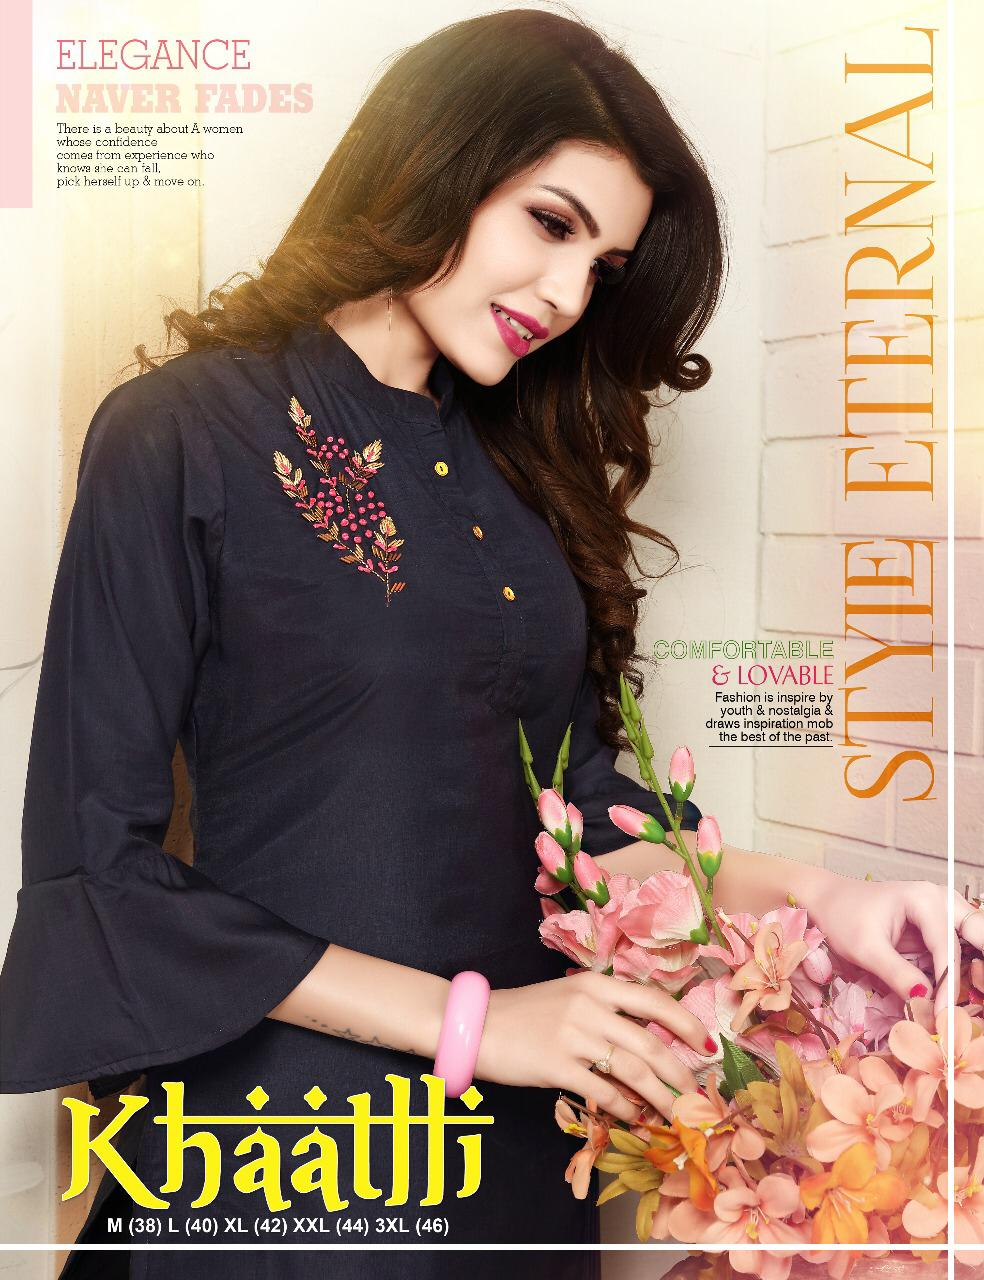 Jhala Impex Khaatlli Buy Kurtis Online For Cheap Rate In India